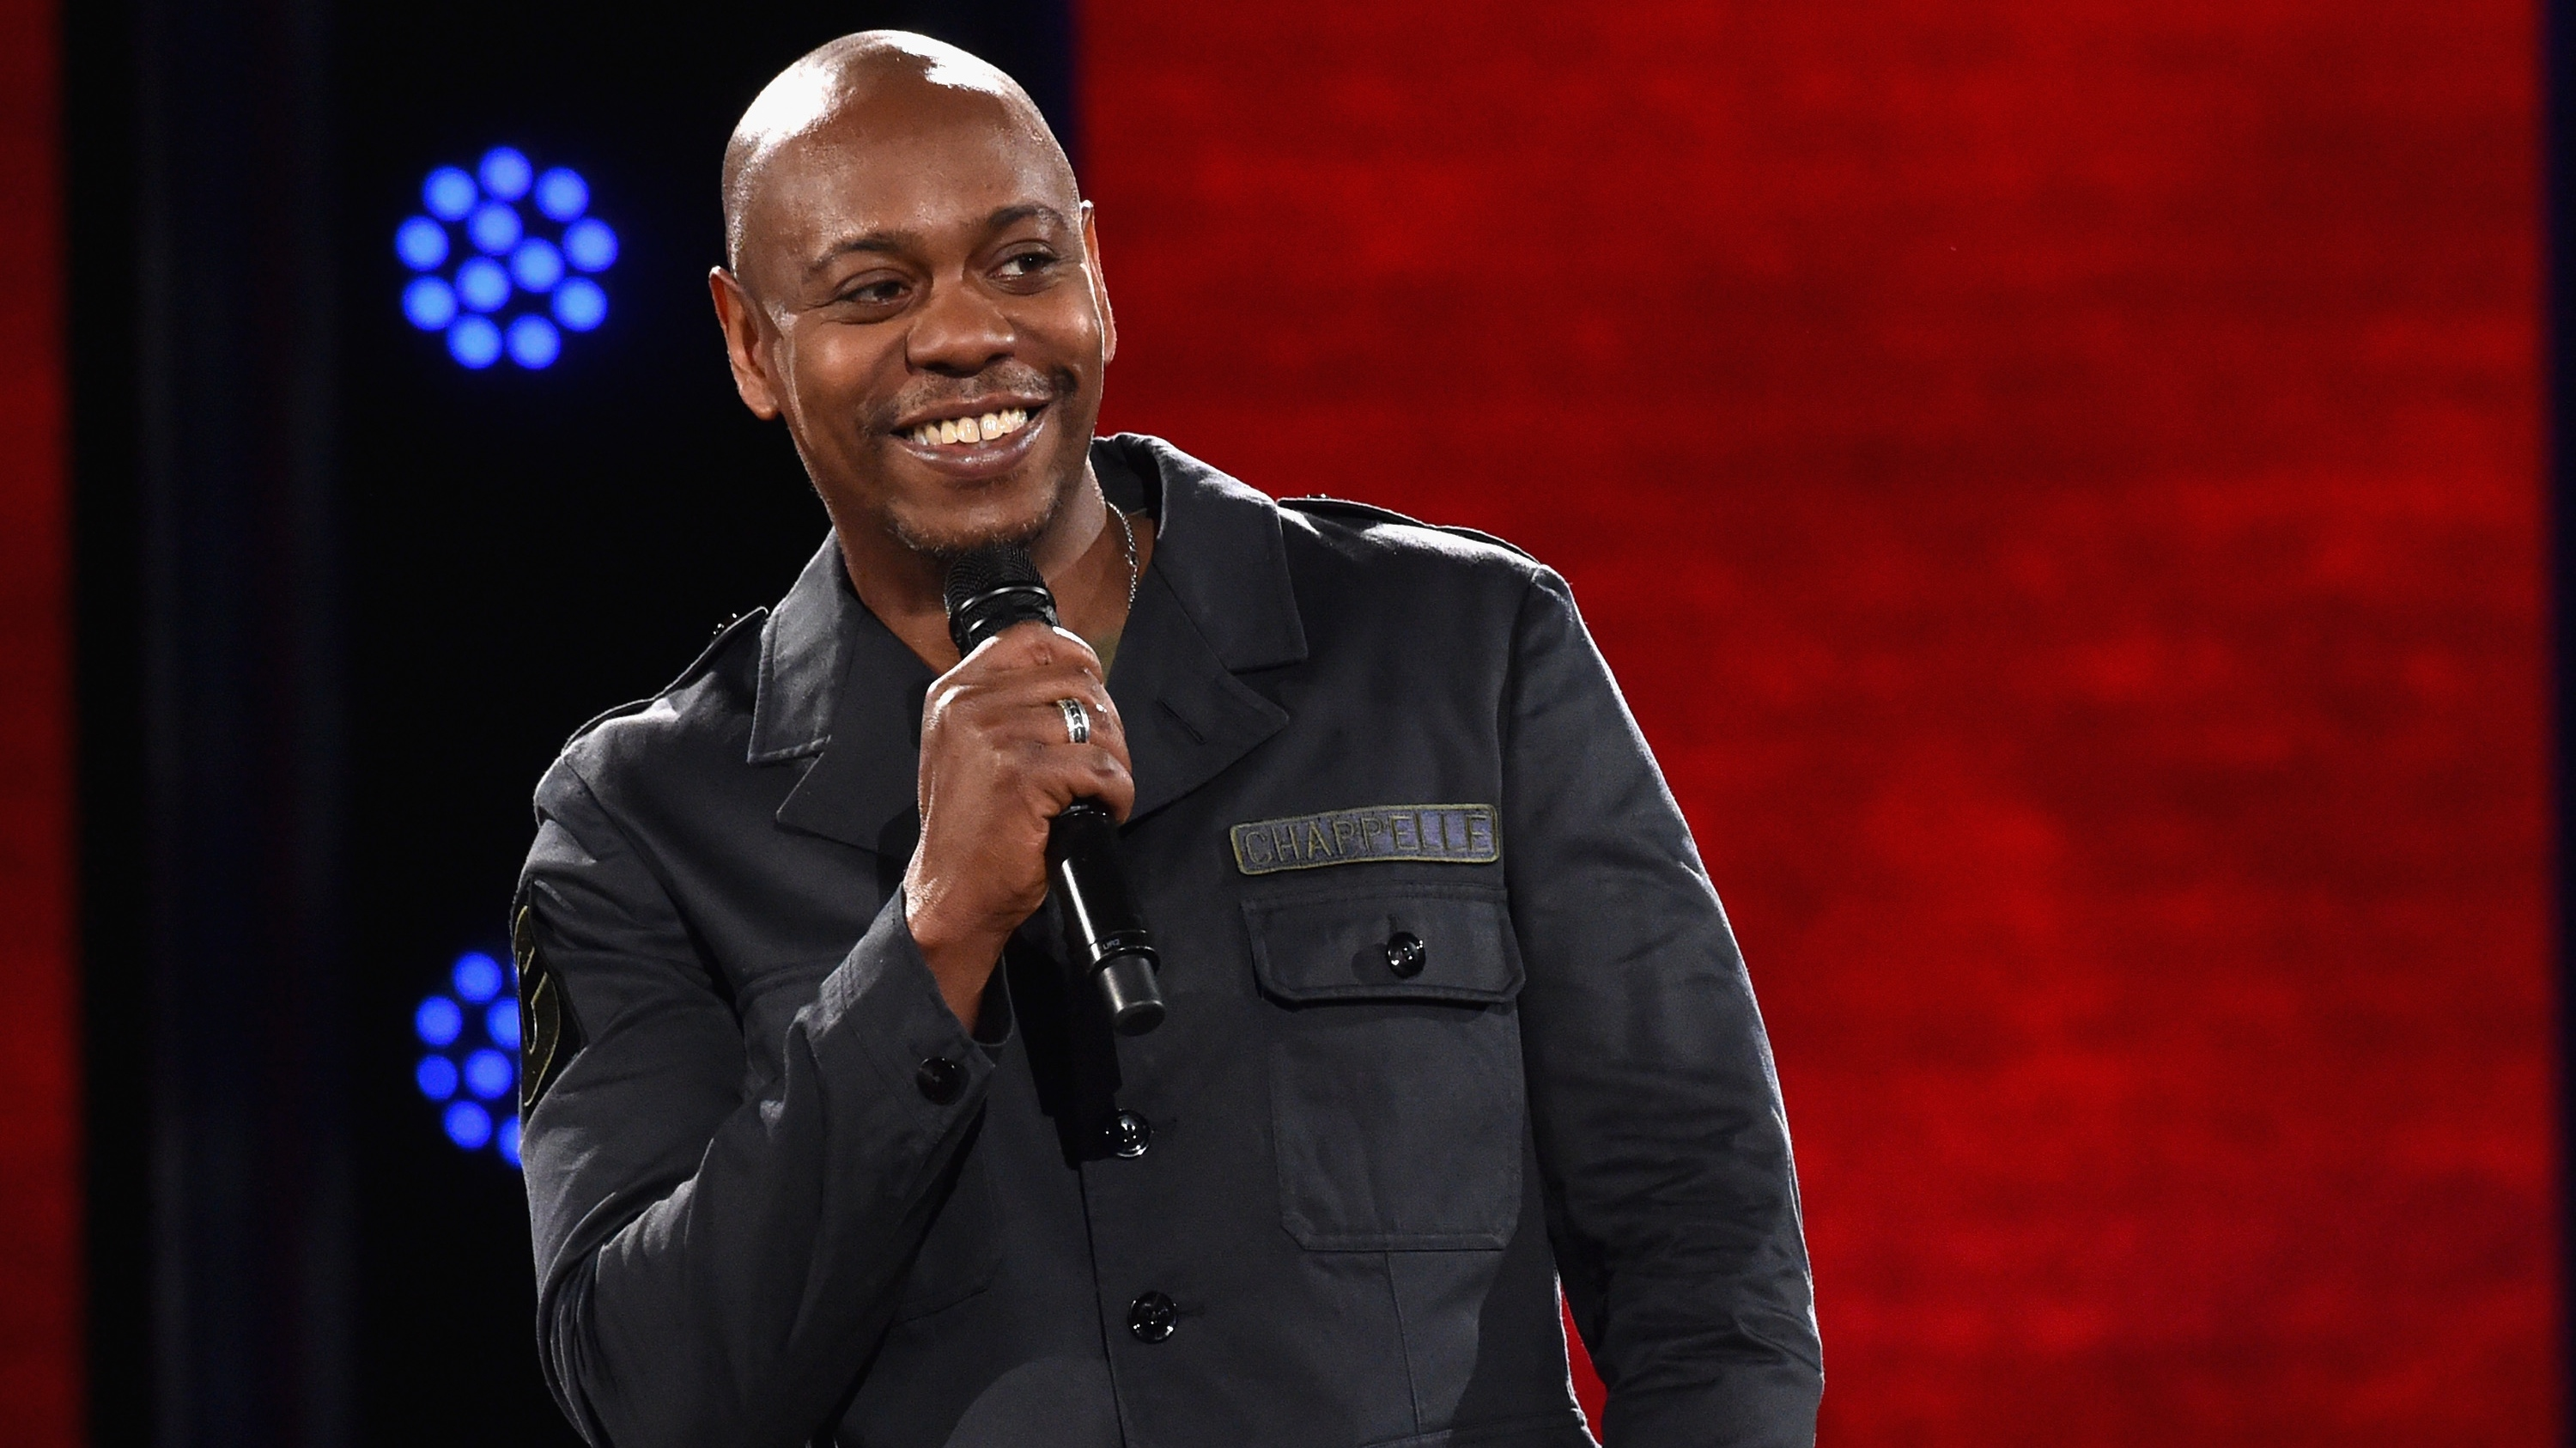 chappelle s show removed from netflix at dave chappelle s request variety 2